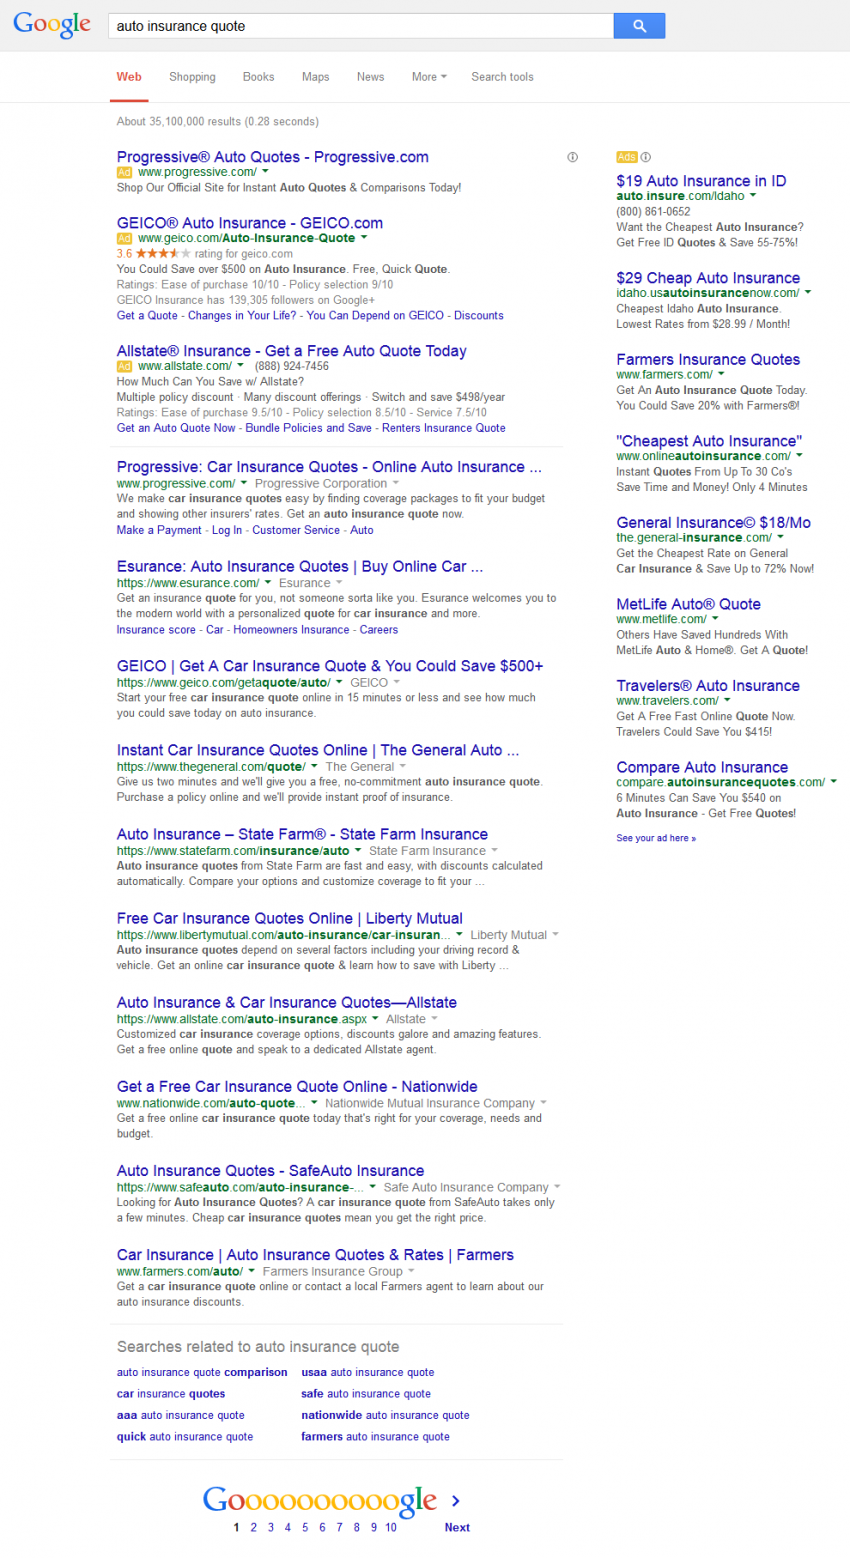 Typical-Google-SERP